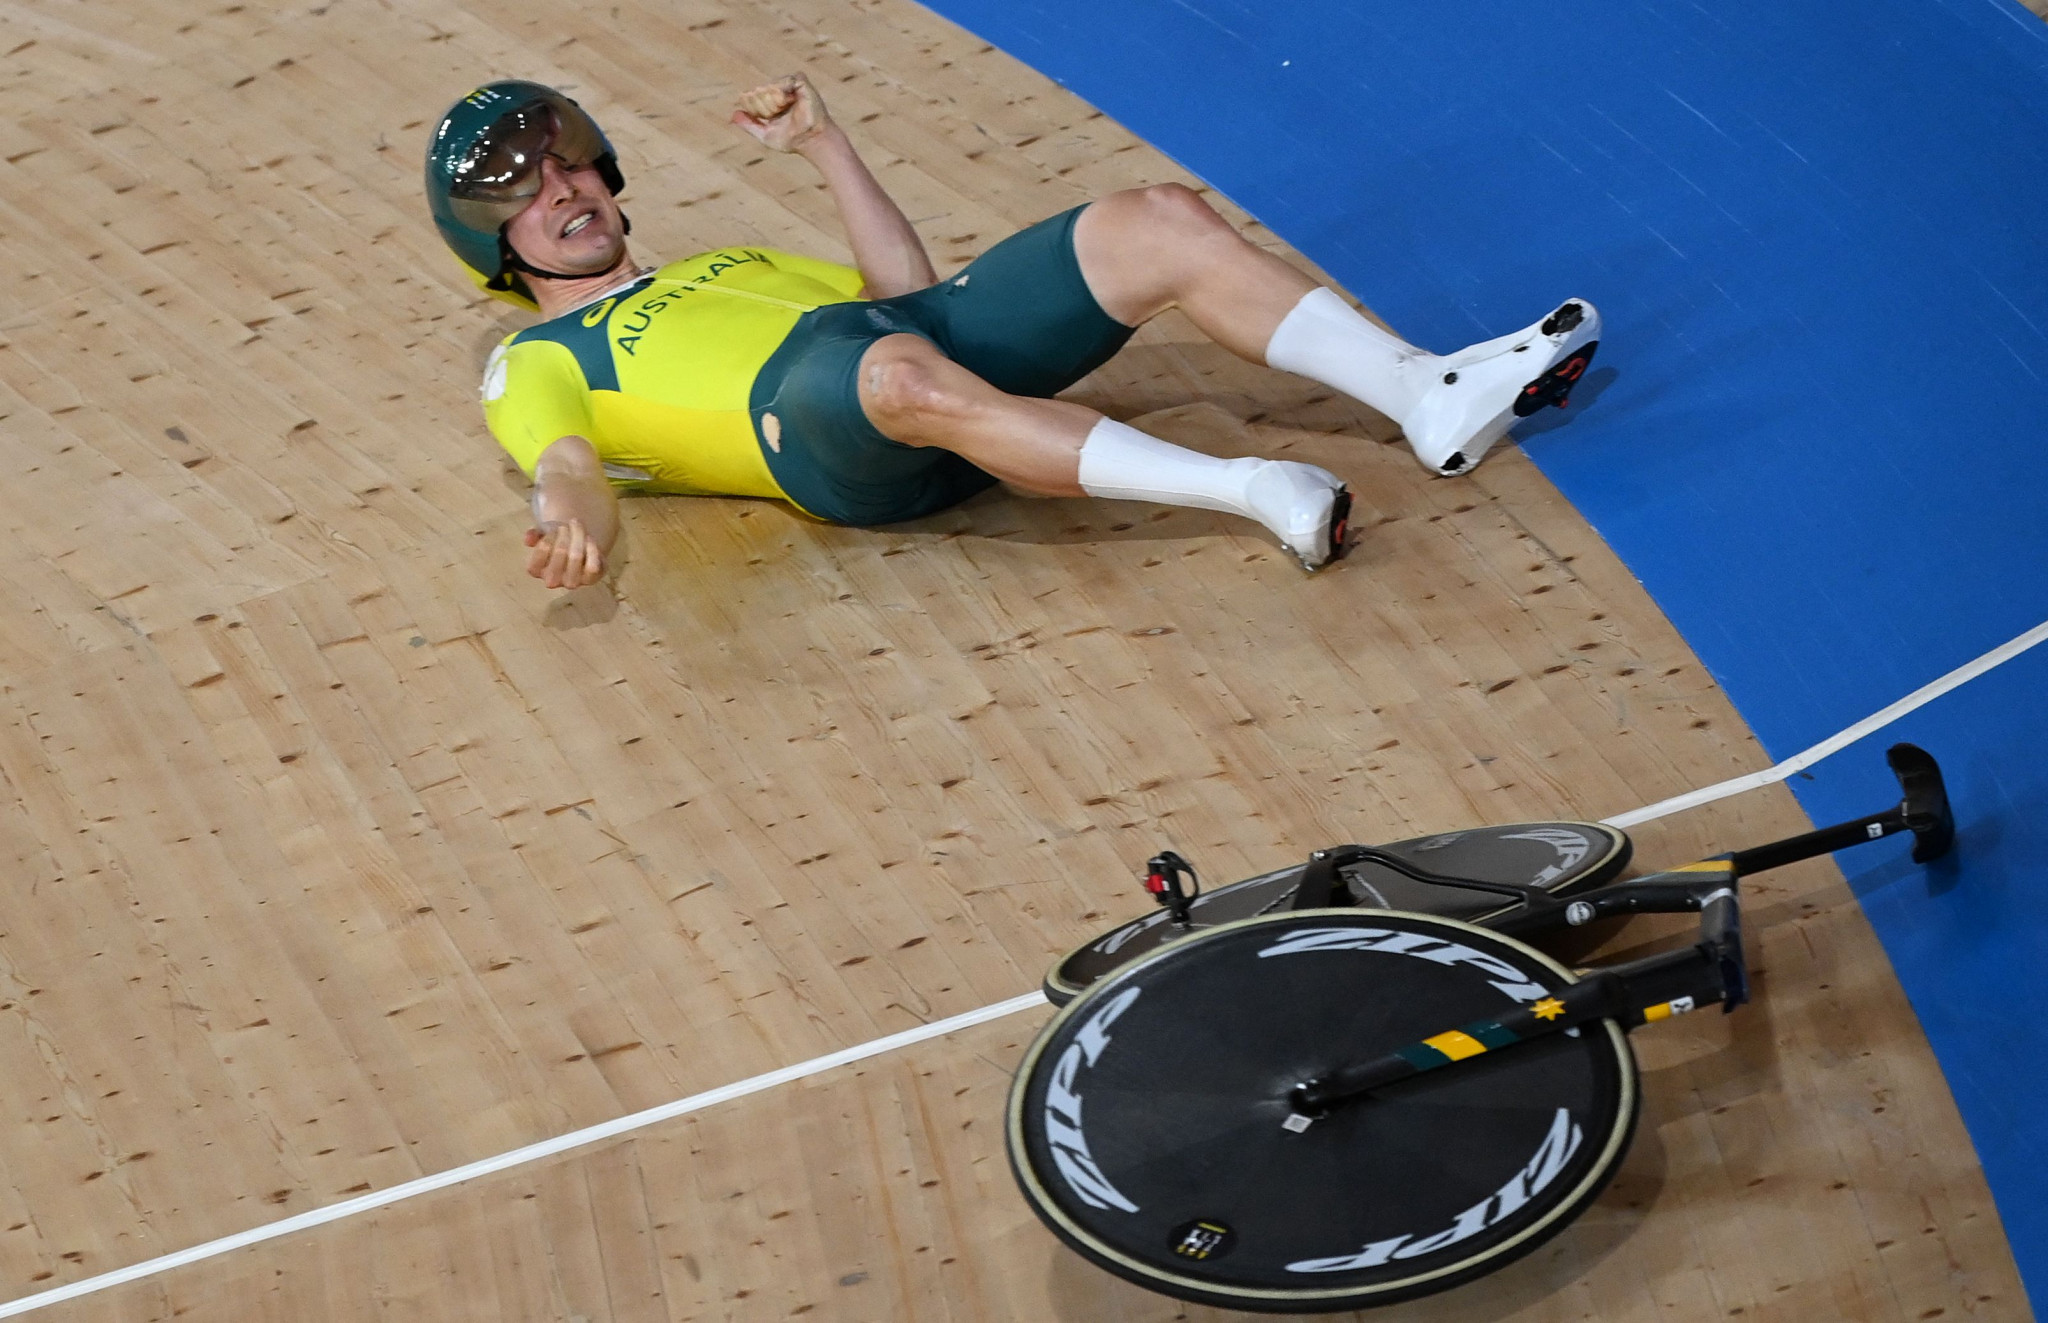 Former Hockey Australia high performance manager to lead Tokyo 2020 cycling malfunction investigation